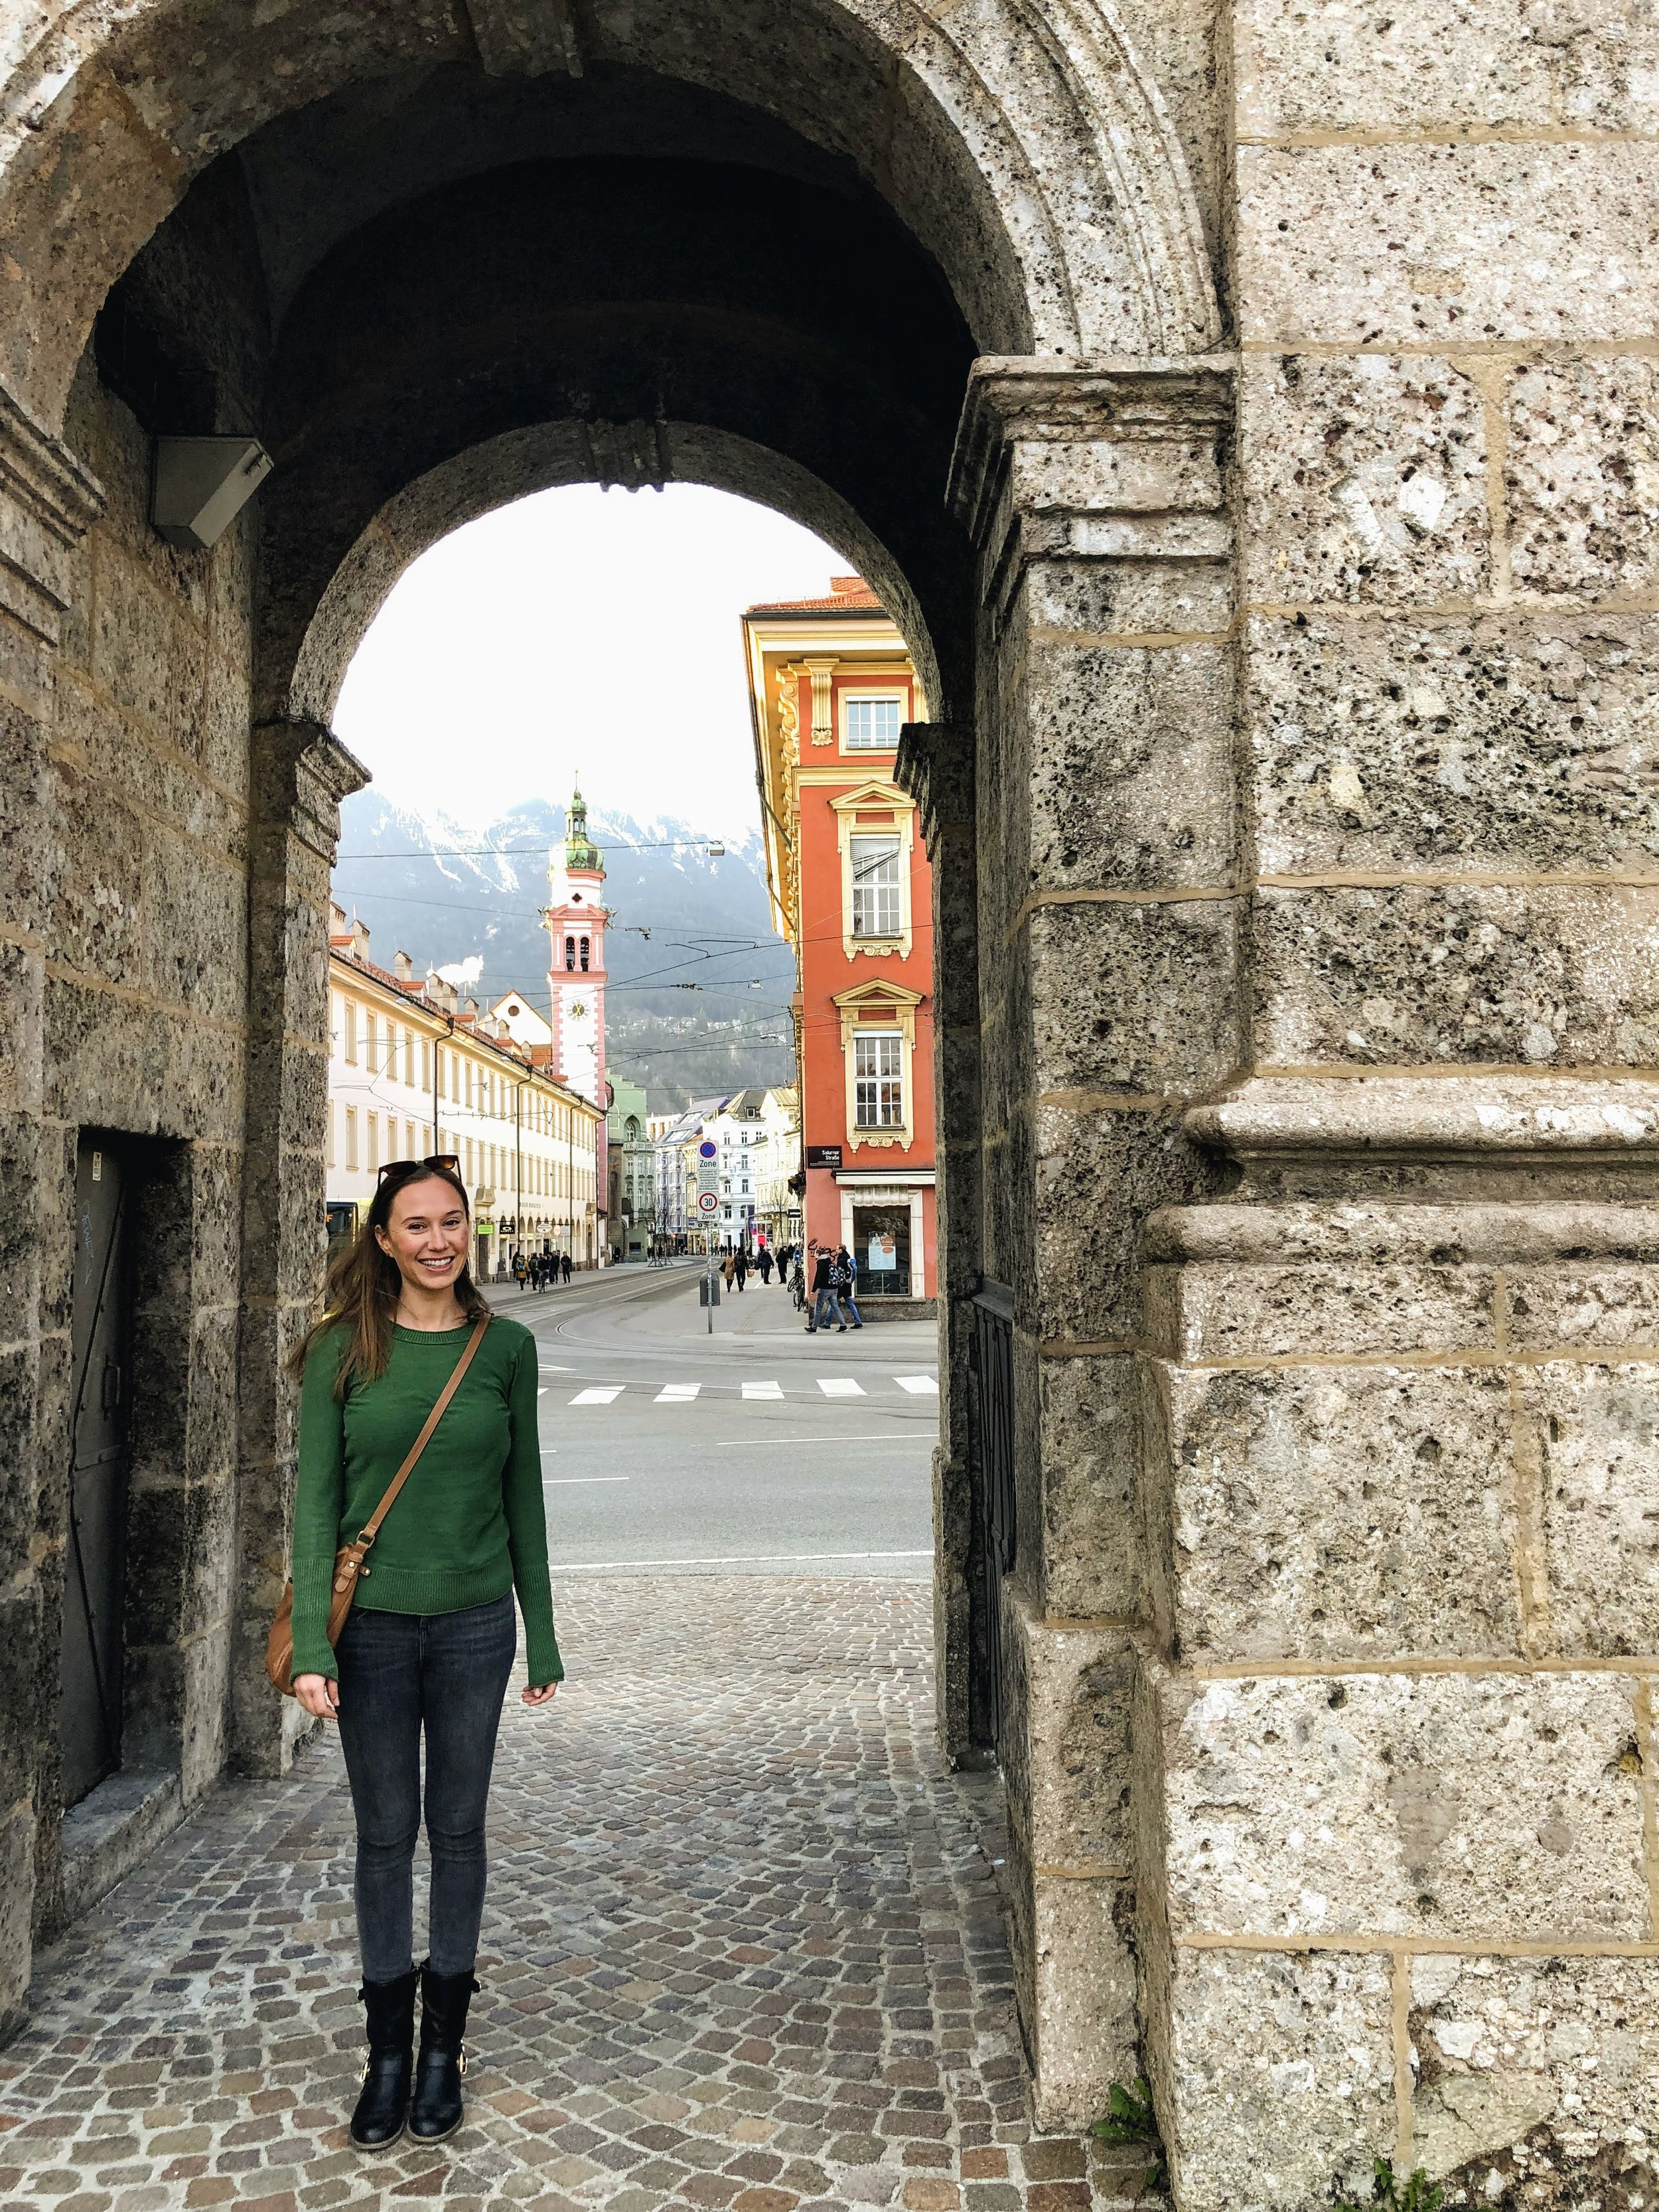 Under the Triumphal Arch in Innsbruck Austria